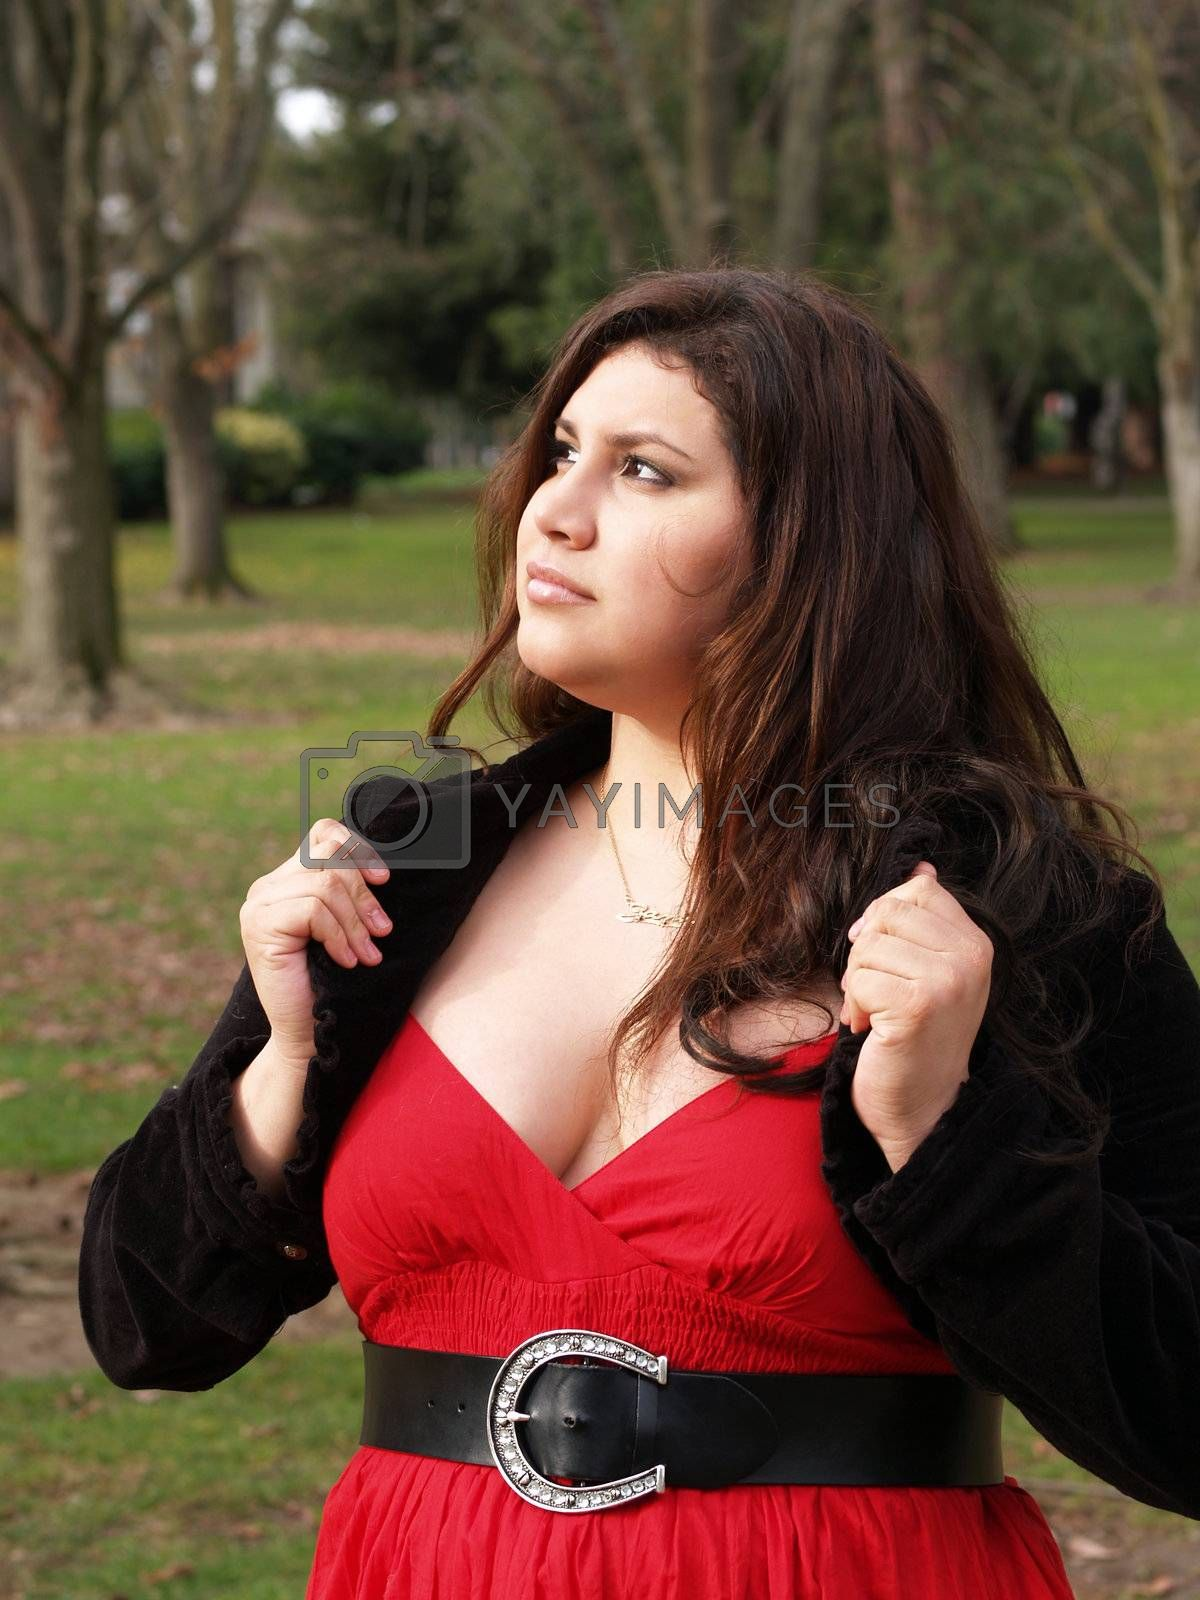 plus-size woman outdoors in jacket and red dress